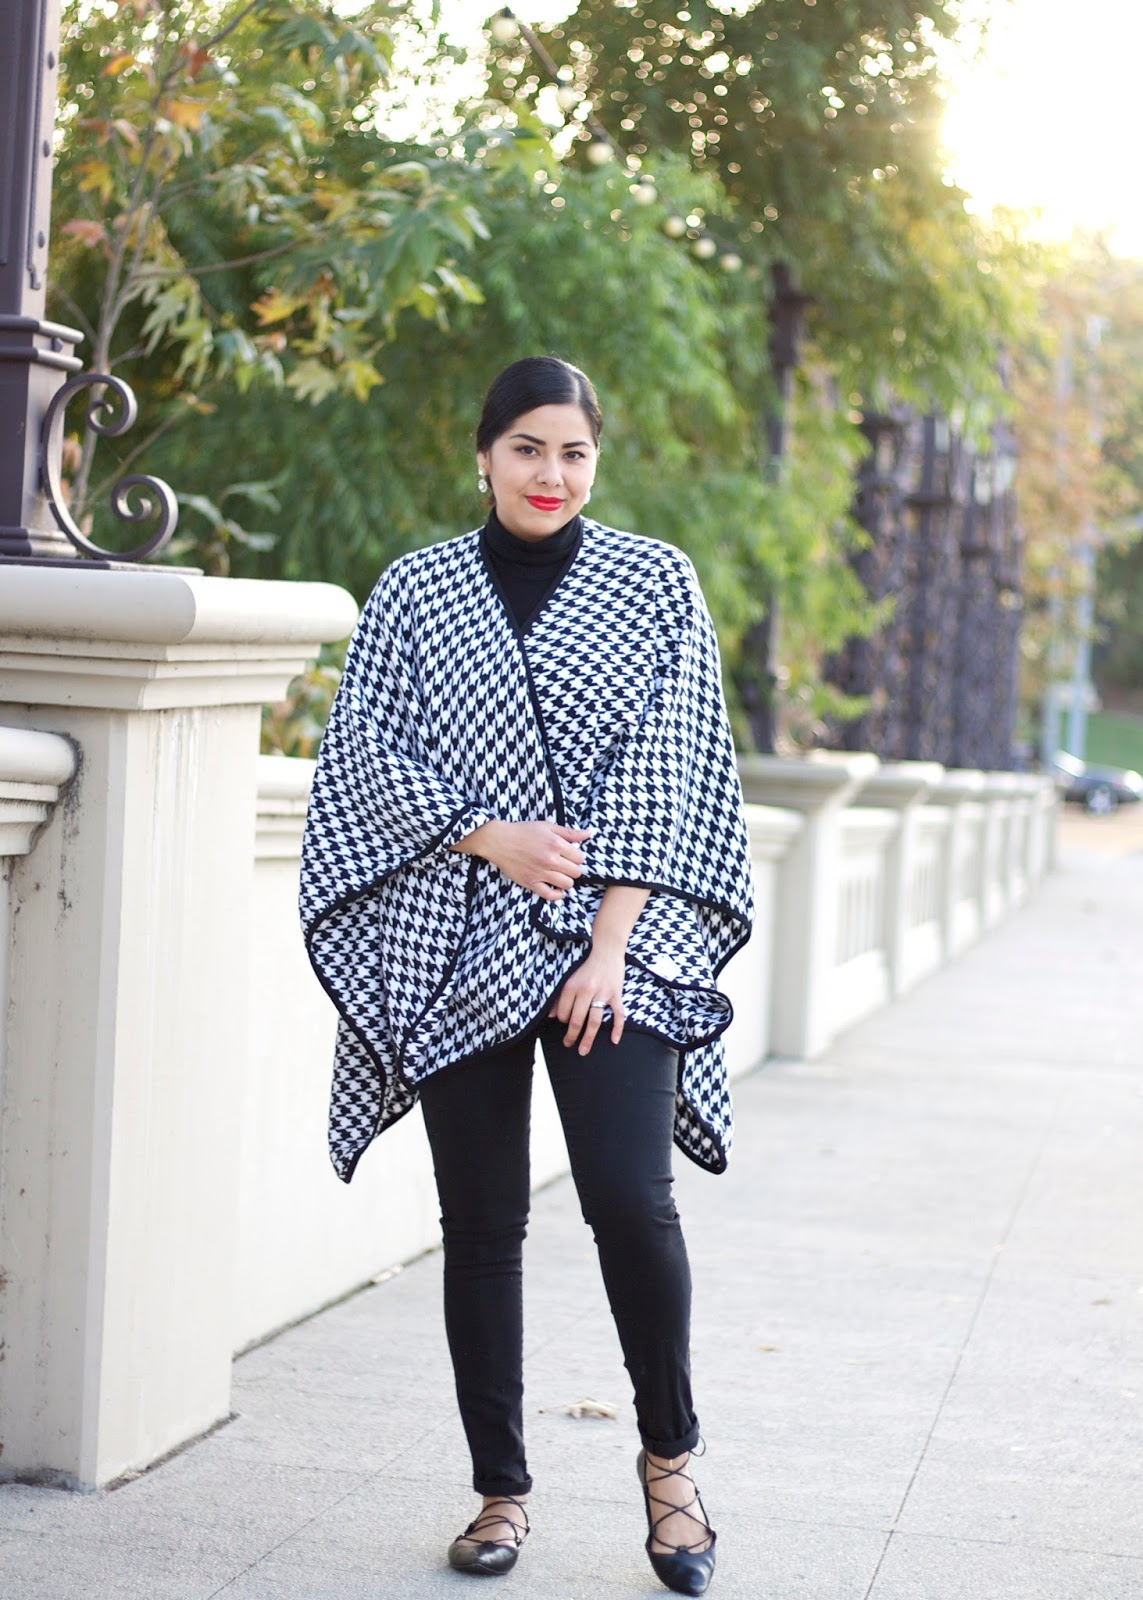 Holiday look 2015, shein houndstooth cape, shein houndstooth poncho, houndstooth outerwear, black and white look with red lips, latina fashion blogger